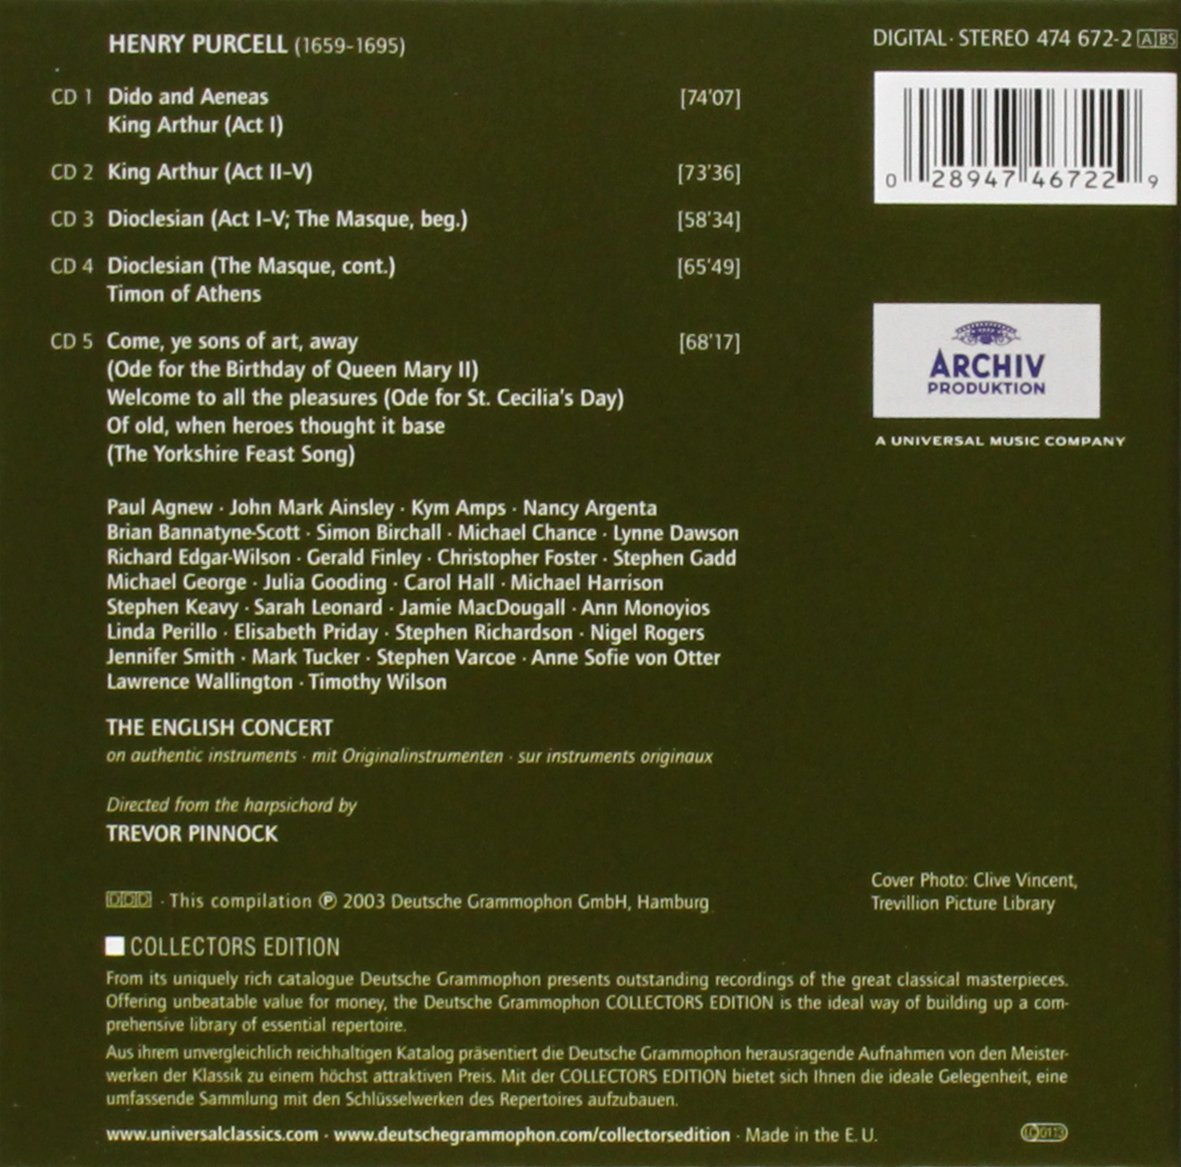 Purcell: Dido & Aeneas / King Arthur / Dioclesian / Timon of Athens / 3 Odes by Archiv Produktion